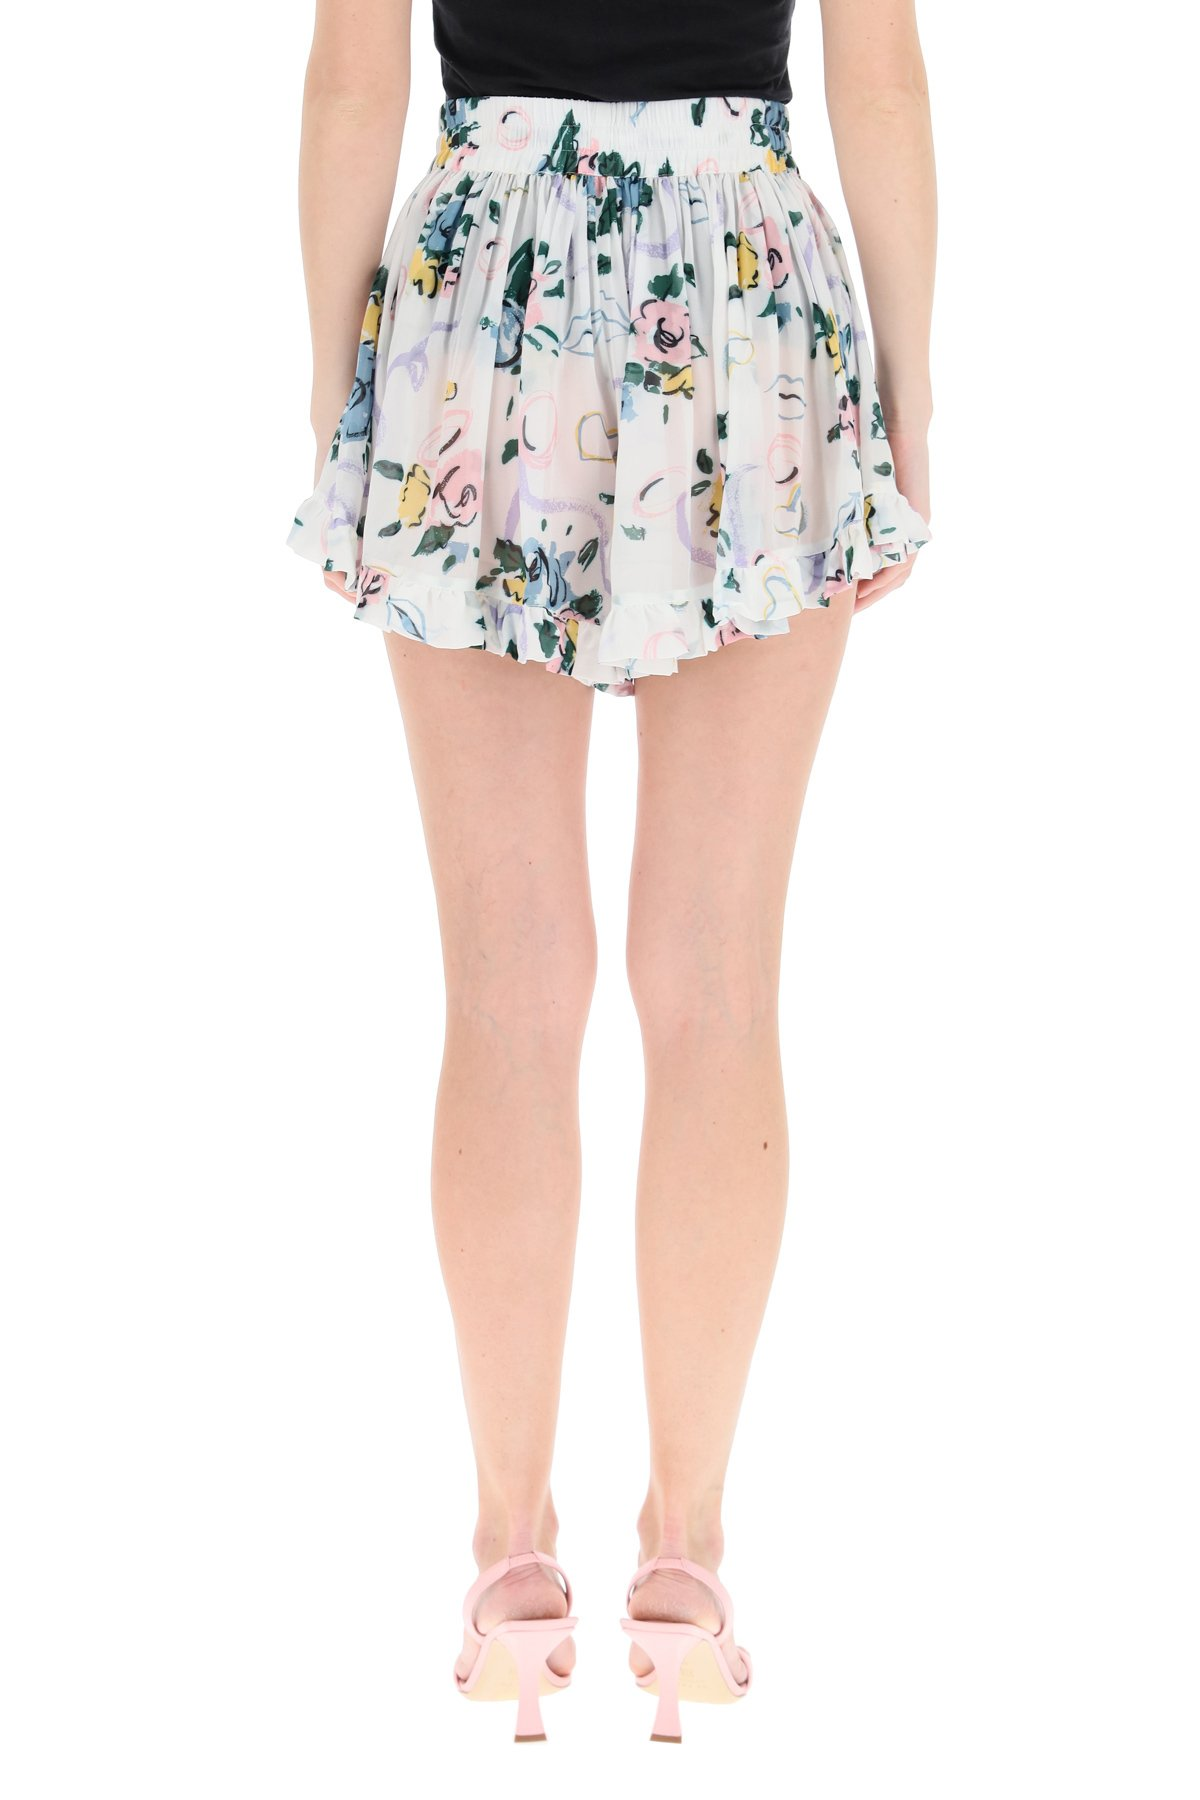 Alessandra rich shorts con stampa floreale